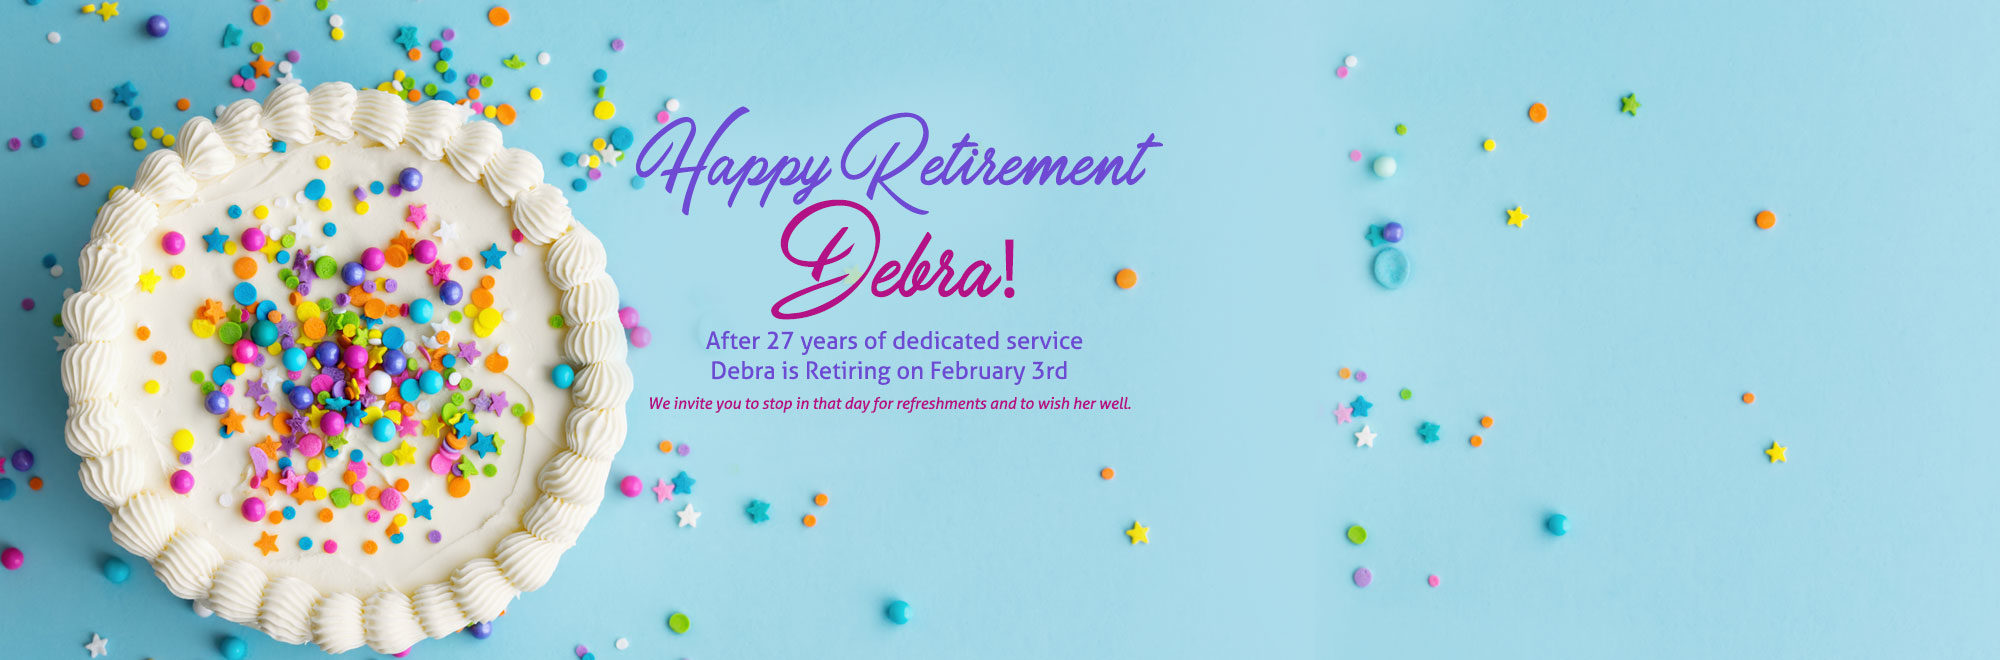 Debra Retirement